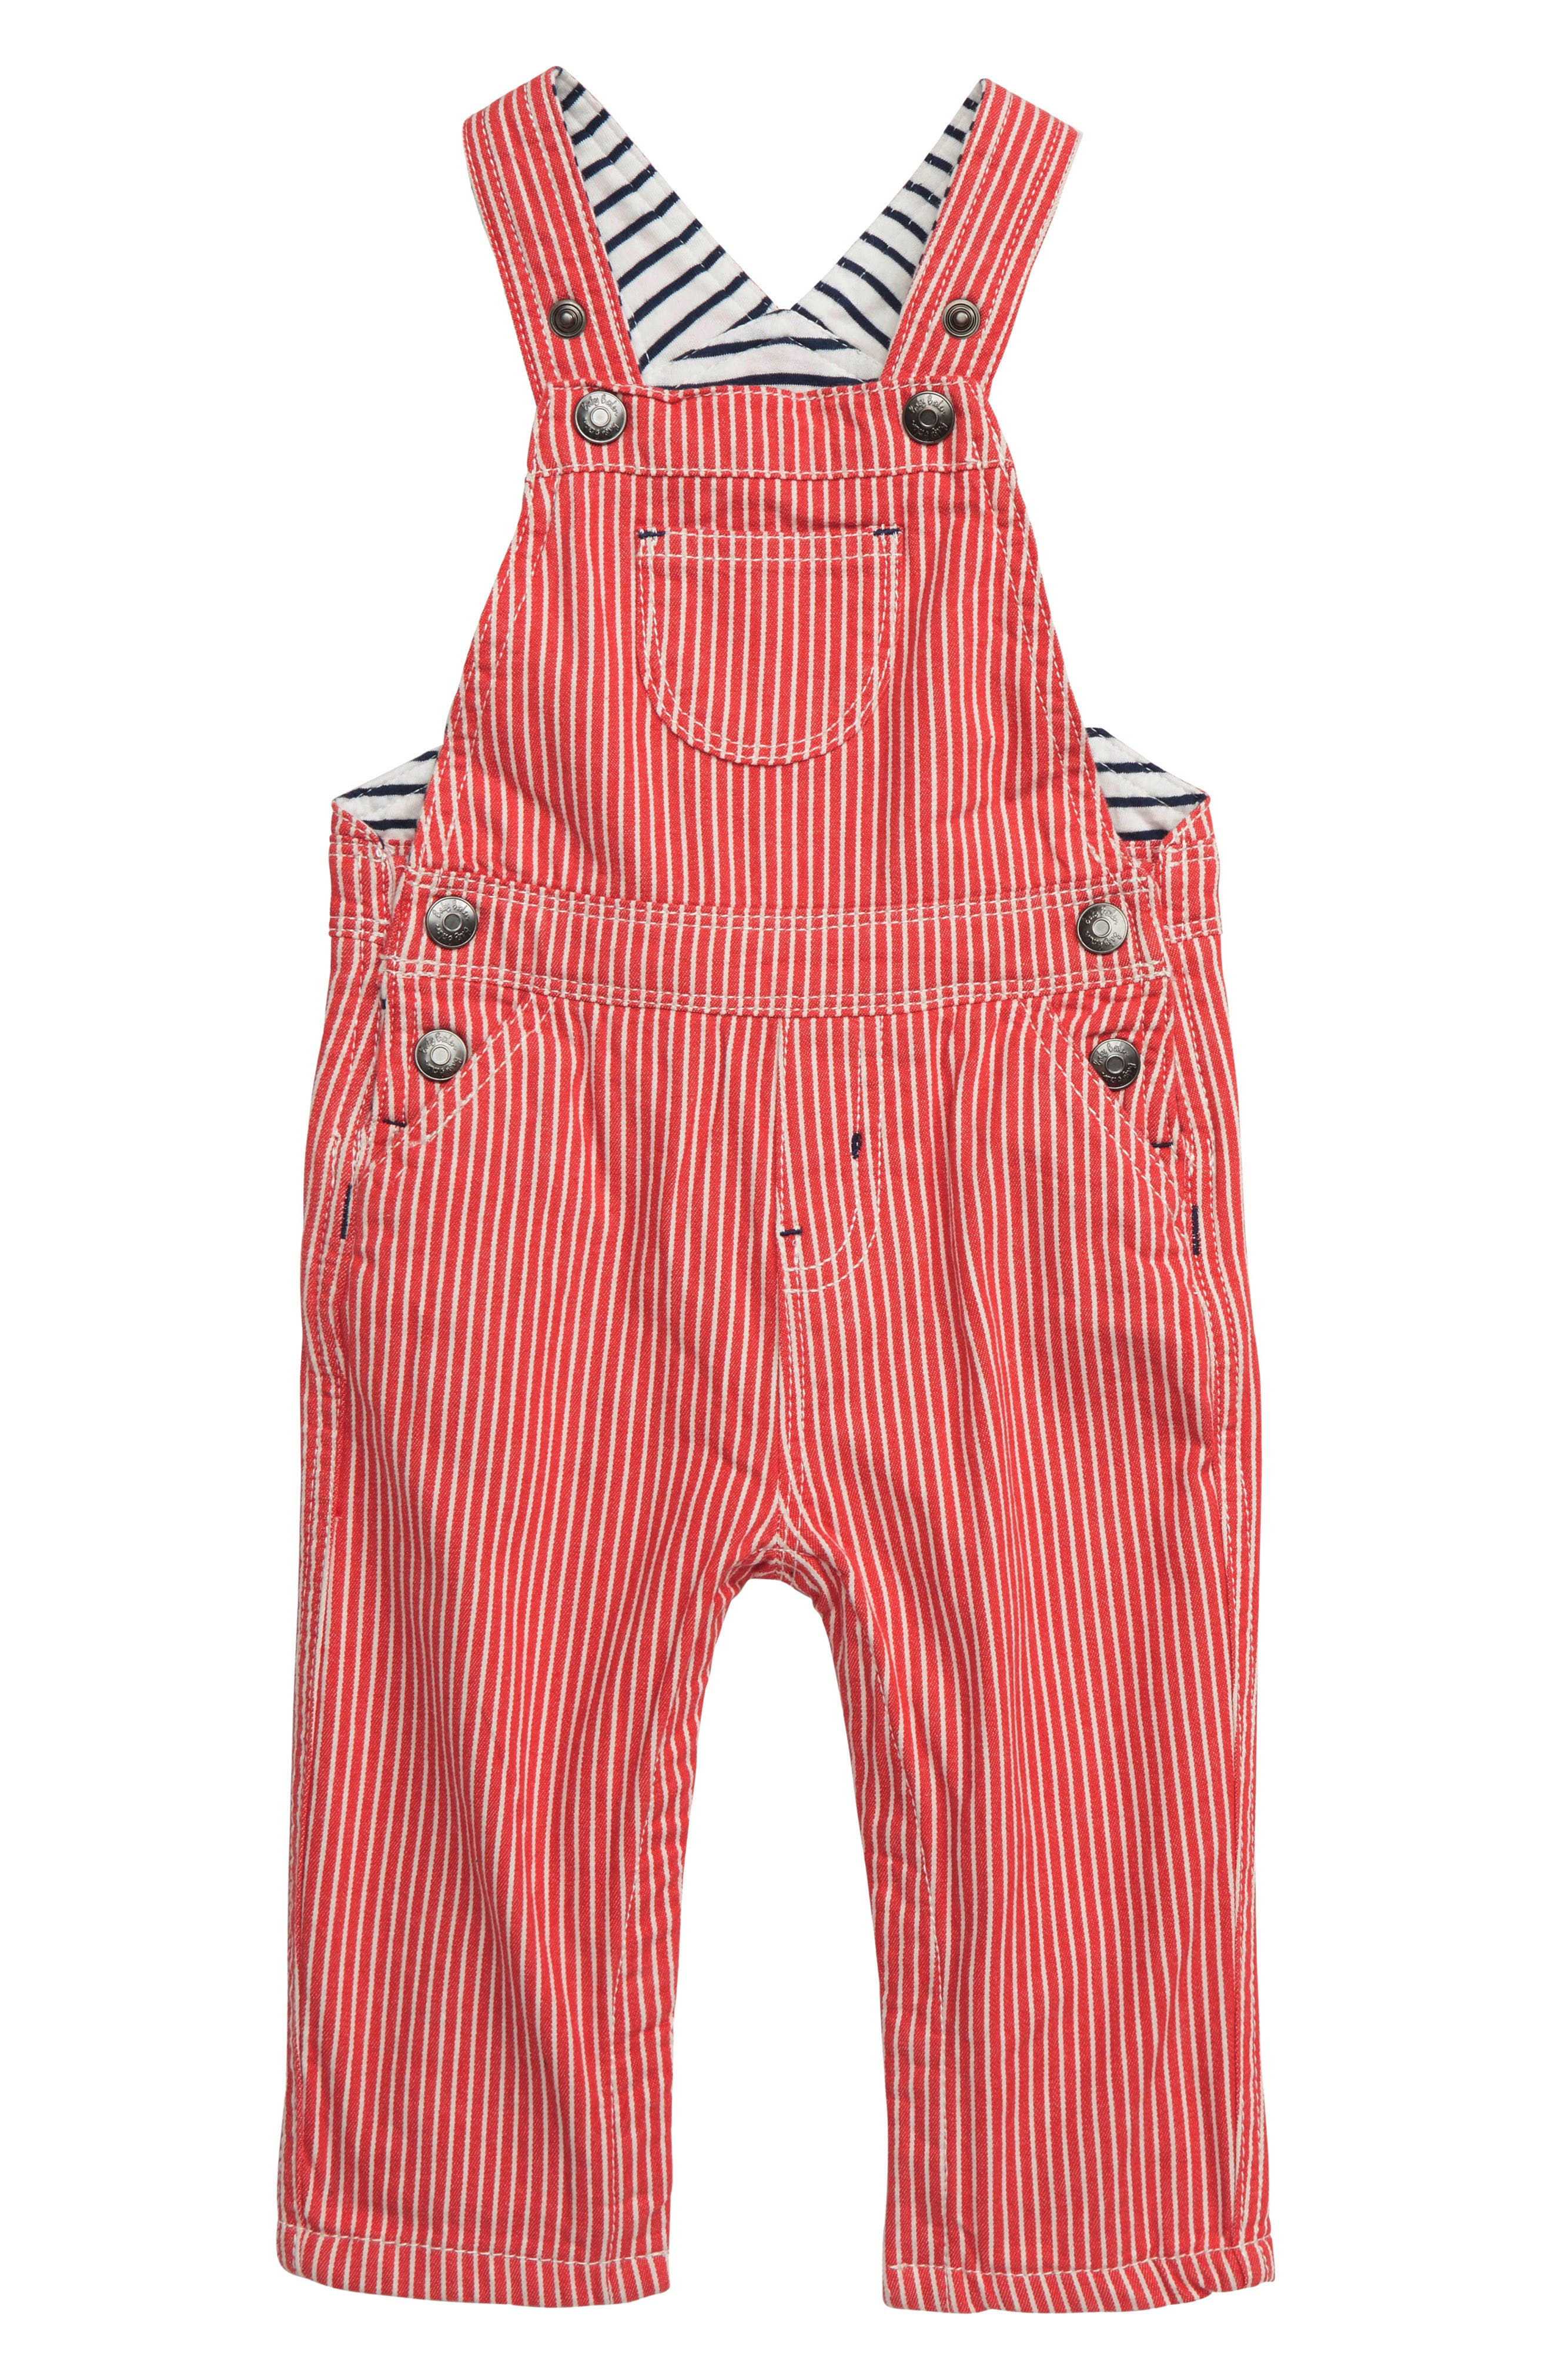 MINI BODEN, Stripe Overalls, Main thumbnail 1, color, RED BEAM RED TICKING STRIPE